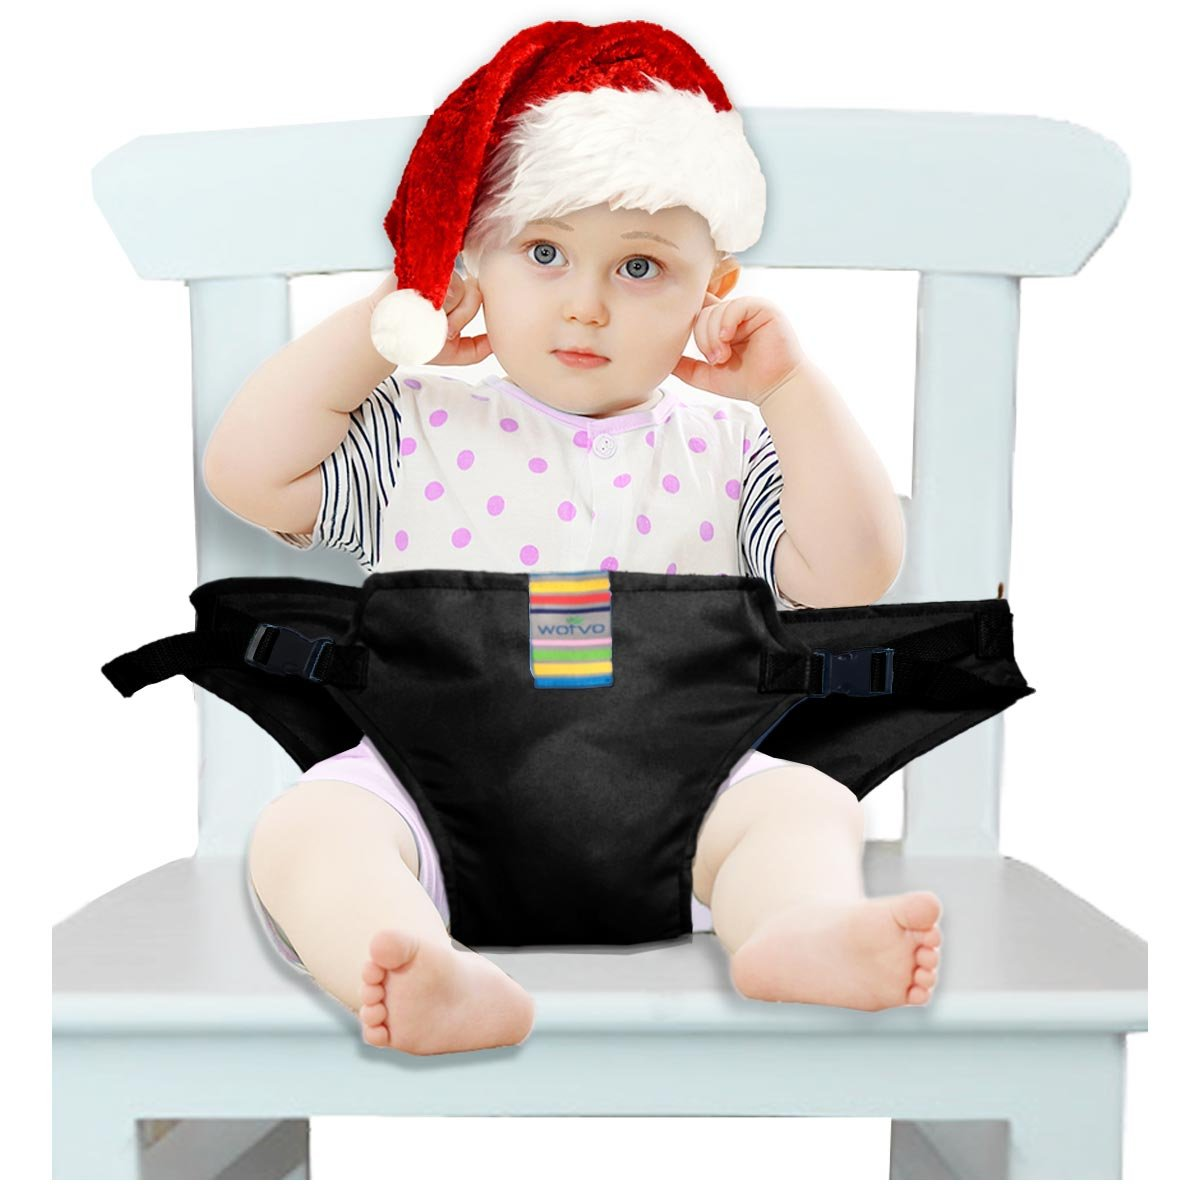 Black 6 Color The Washable Portable Travel High Chair Booster Baby Seat with Straps Toddler Safety Harness Baby Feeding The Strap